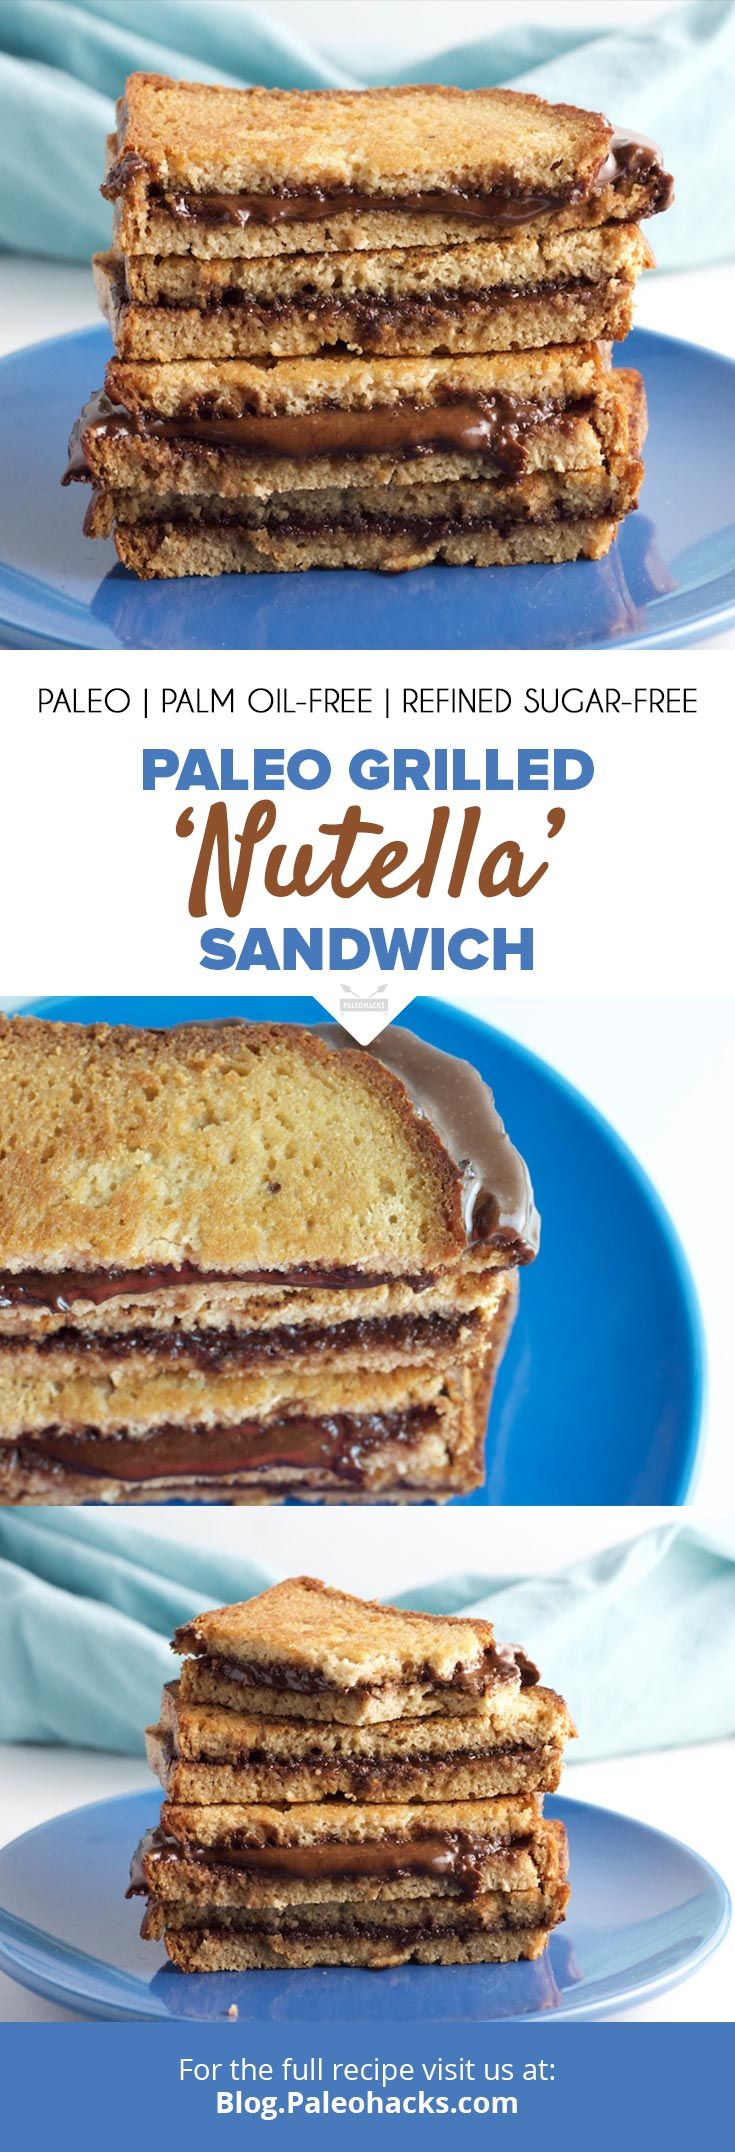 If you need something sweet and gooey, look no further than thisgrilled Nutella sandwich. Get the full recipe here: http://paleo.co/nutellasammie